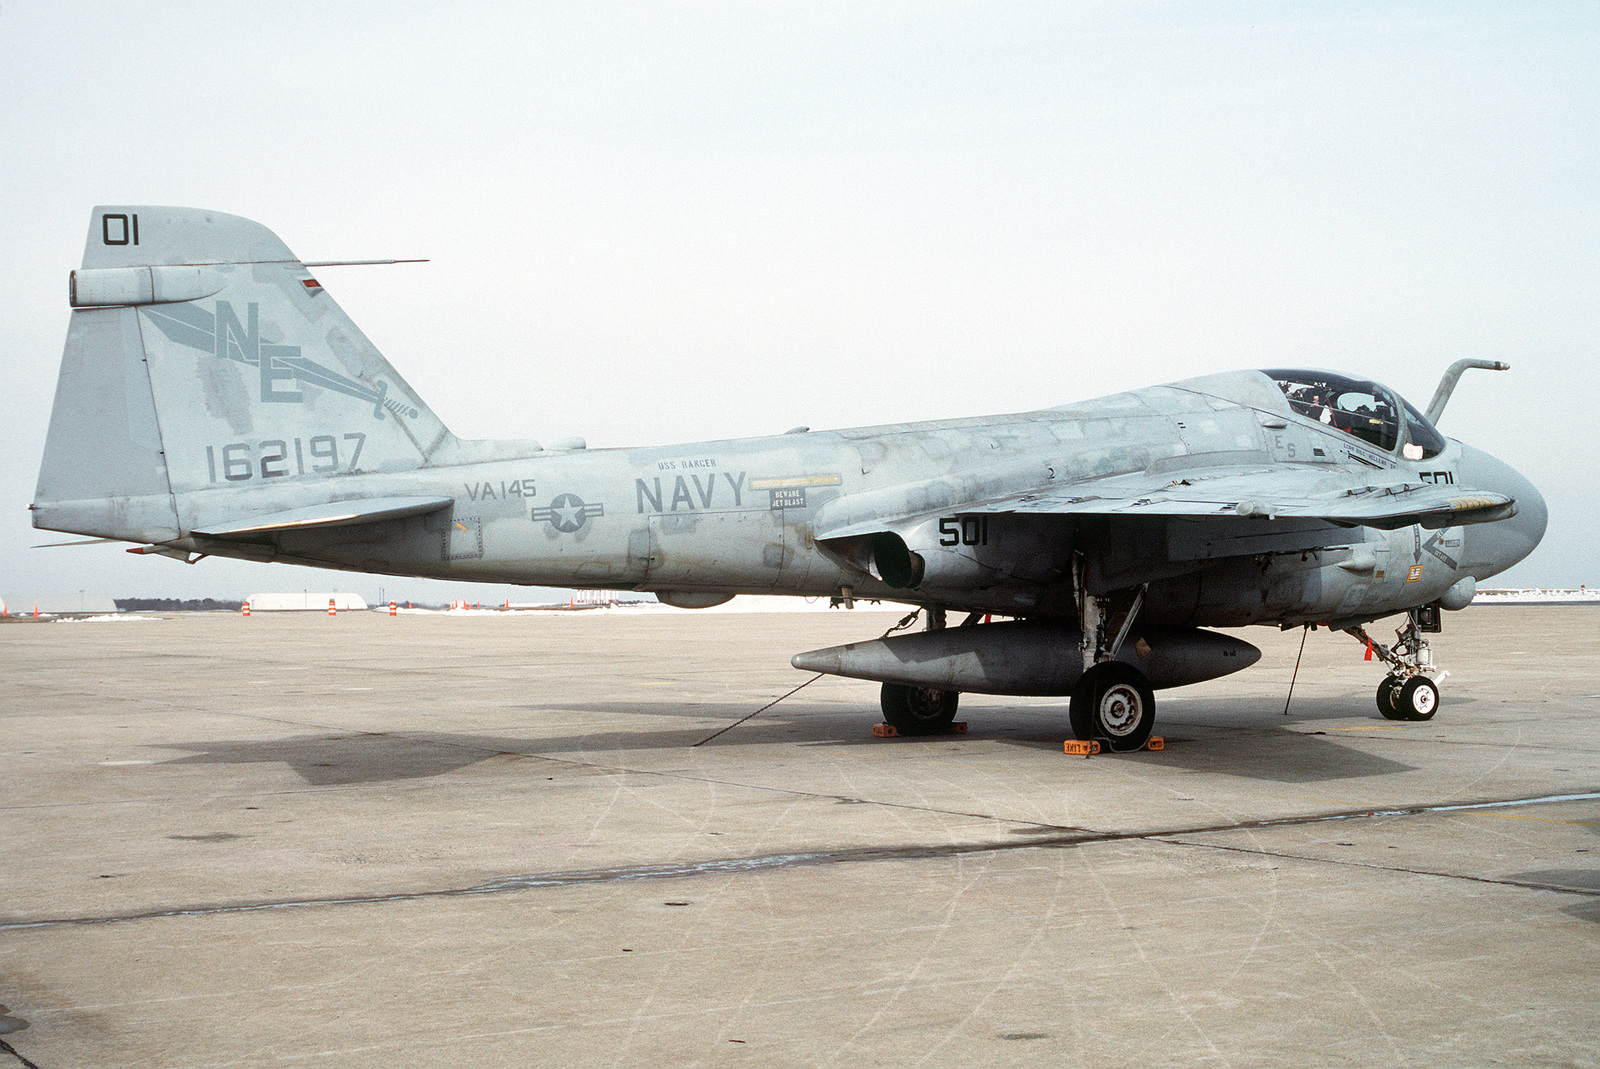 A right side view of an Attack Squadron 145 (VA-145) A-6E Intruder aircraft parked on the flight line